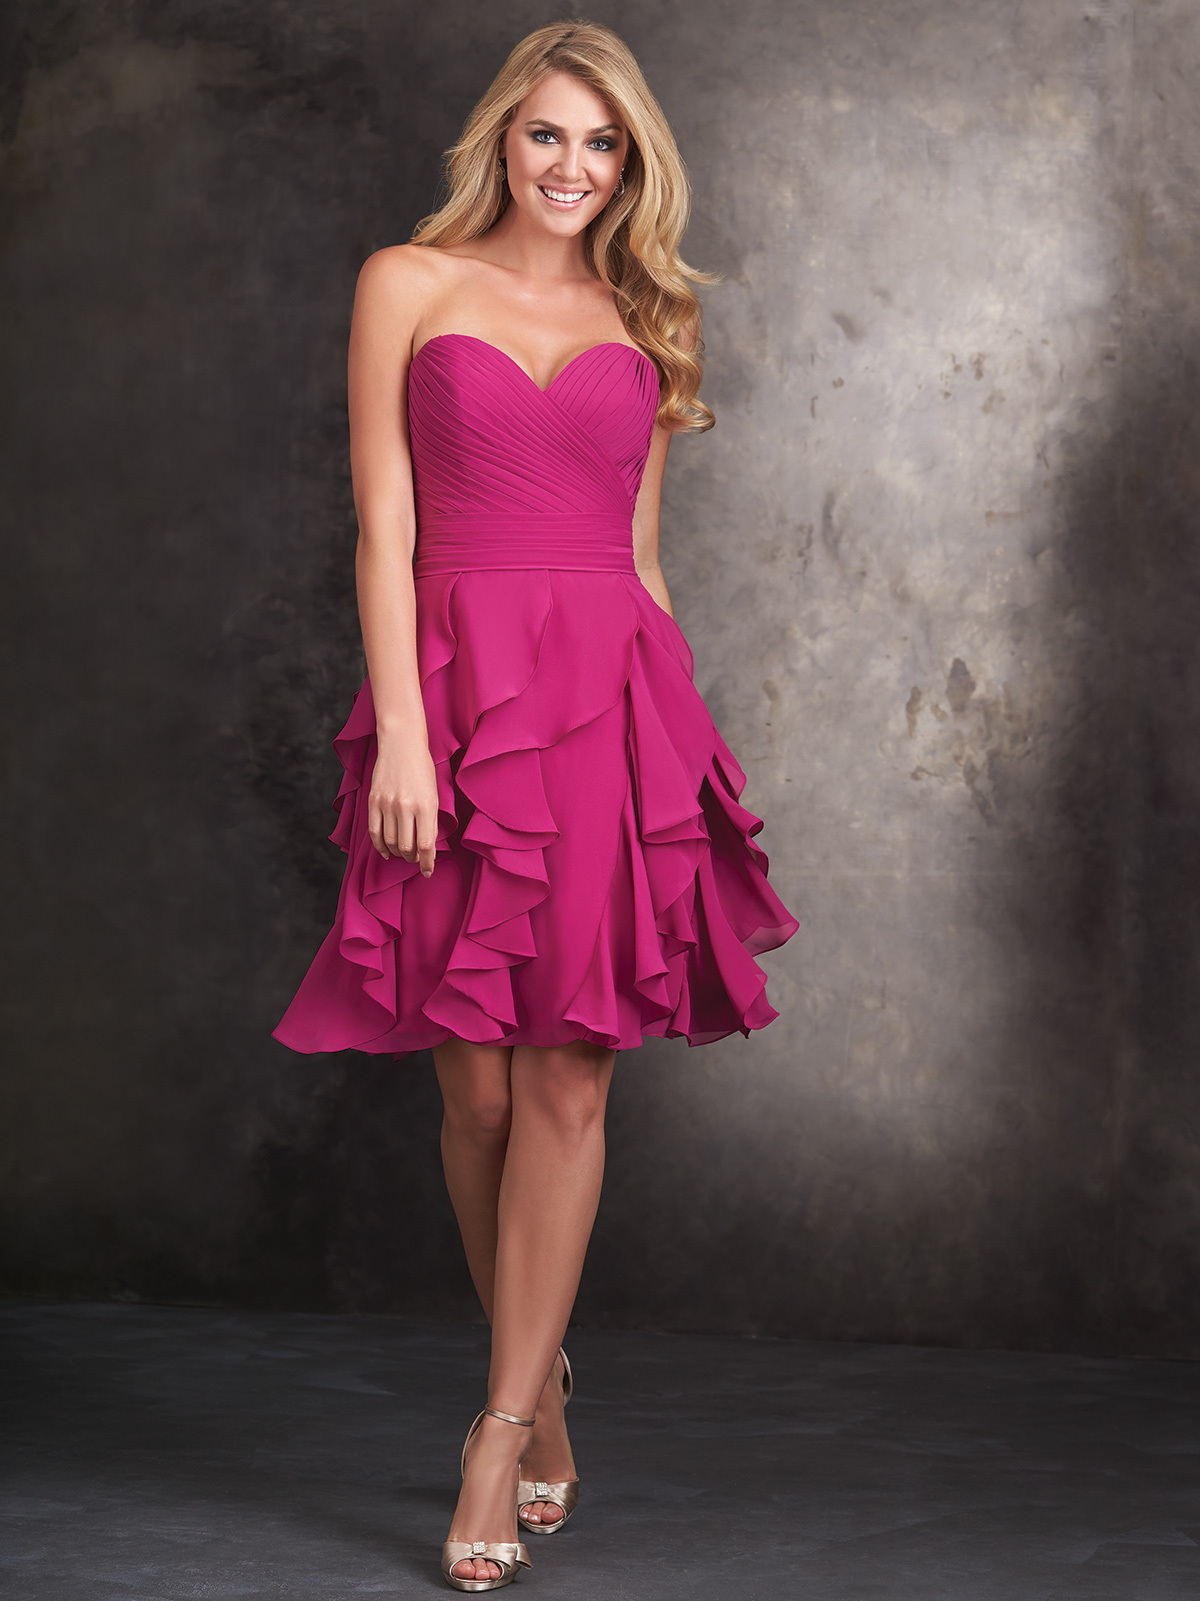 Excelente Allure Bridesmaid Dress Componente - Ideas de Estilos de ...